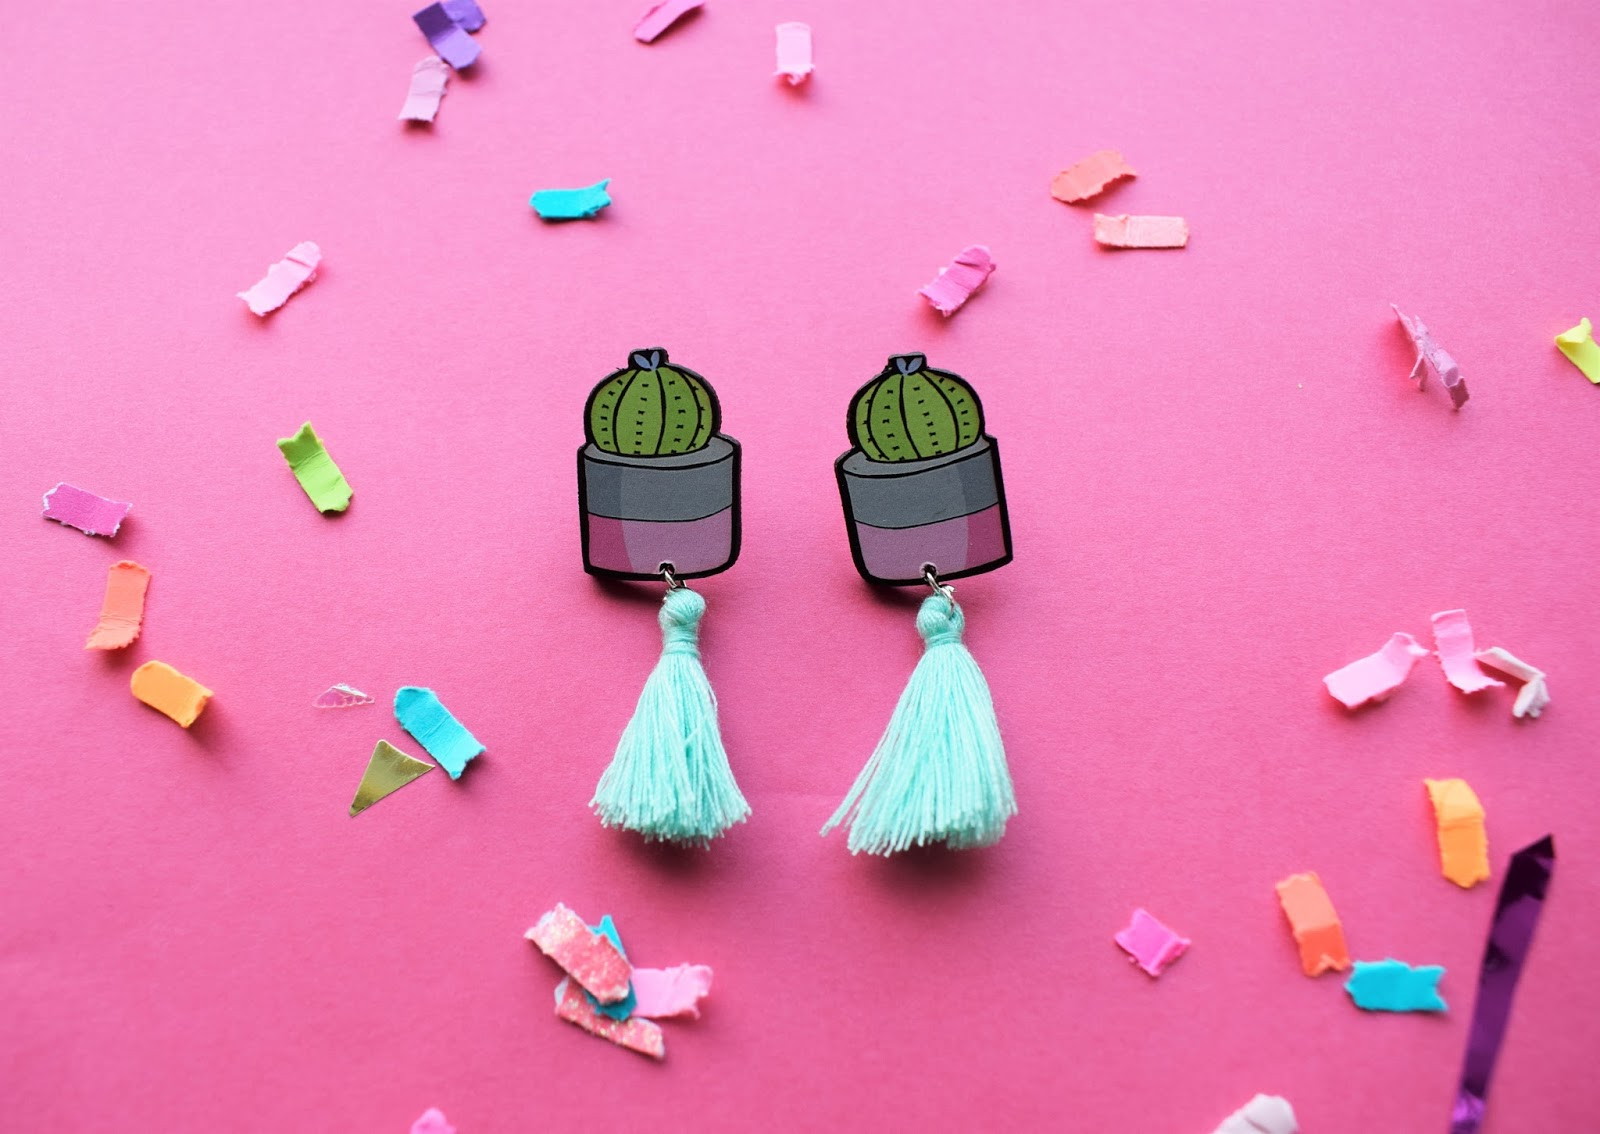 jewellery club subscription box cactus illustrated jewellery, confetti, cactus party, succulent jewellery, terranium jewellery